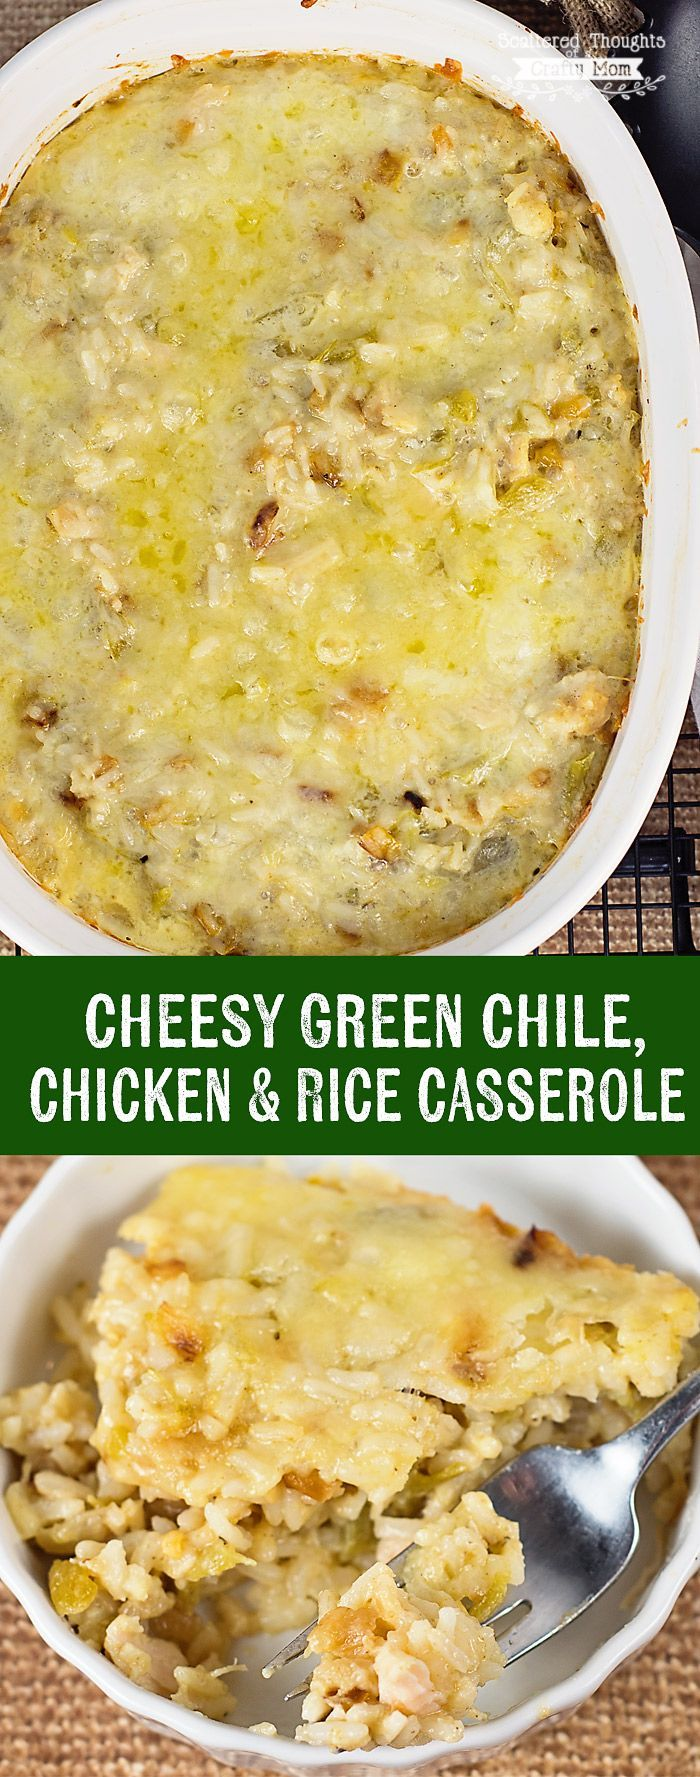 This spicy, hearty and Cheesy Green Chile, Chicken and Rice Casserole will definitely keep you warm and full in the upcoming winter months!